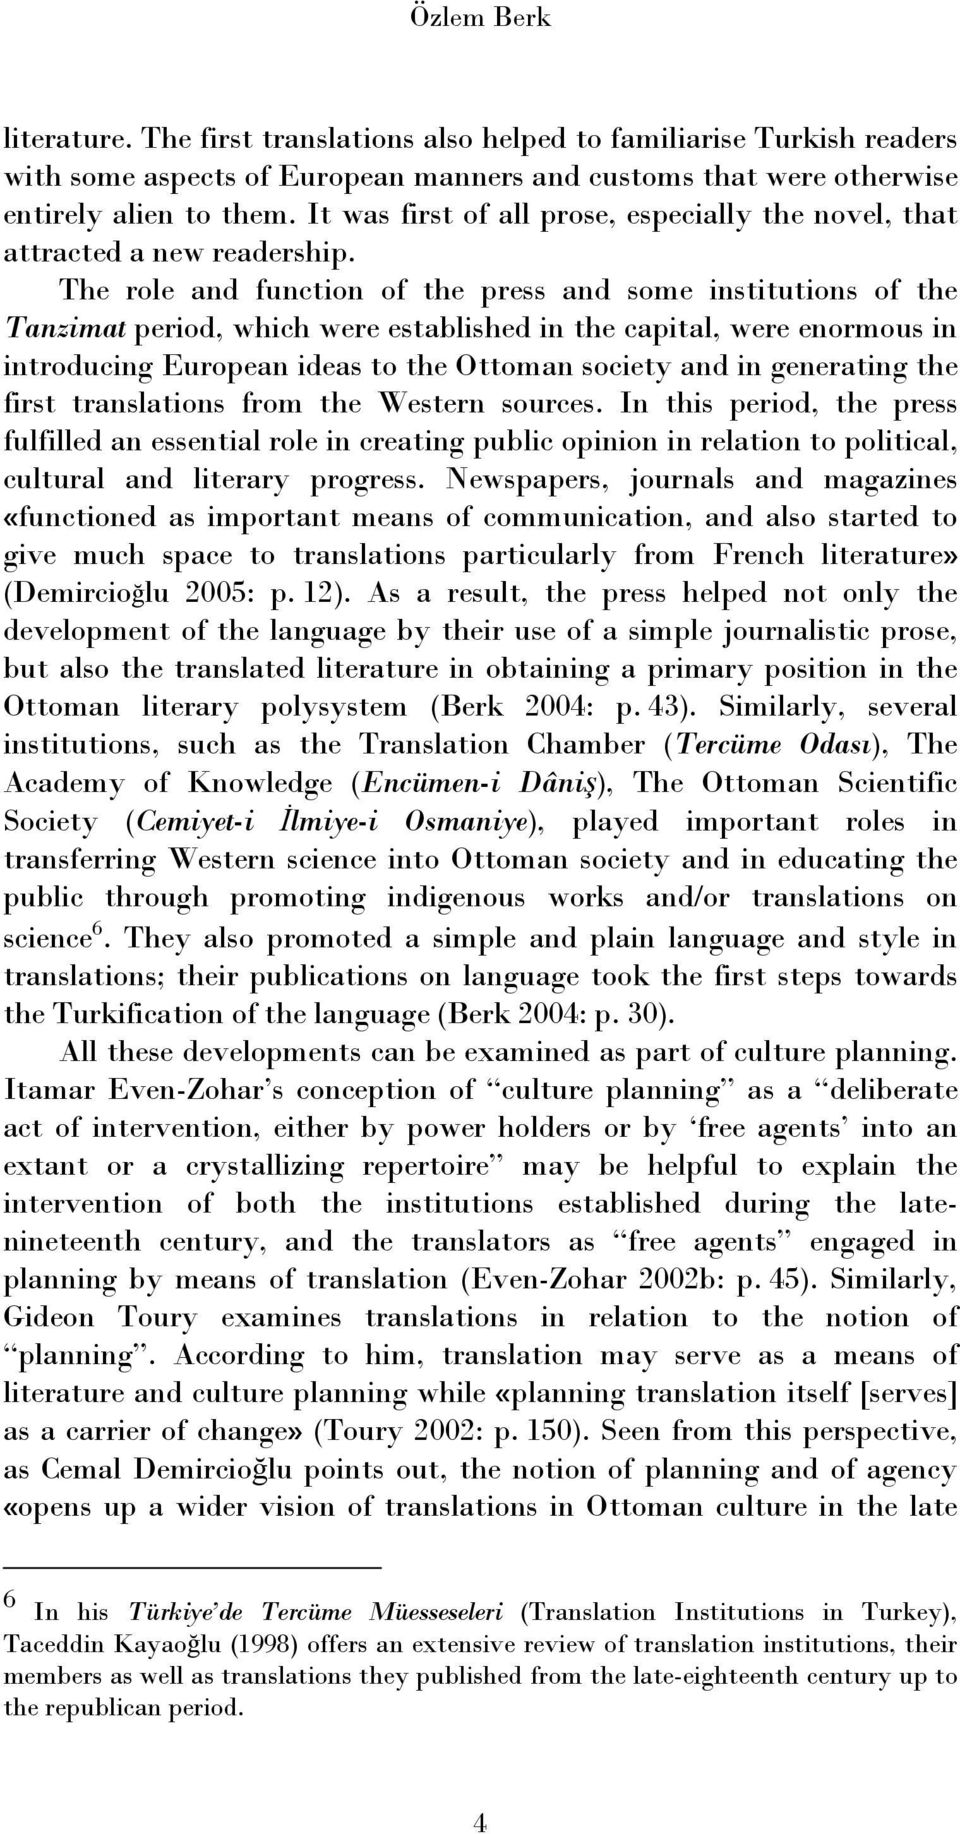 The role and function of the press and some institutions of the Tanzimat period, which were established in the capital, were enormous in introducing European ideas to the Ottoman society and in